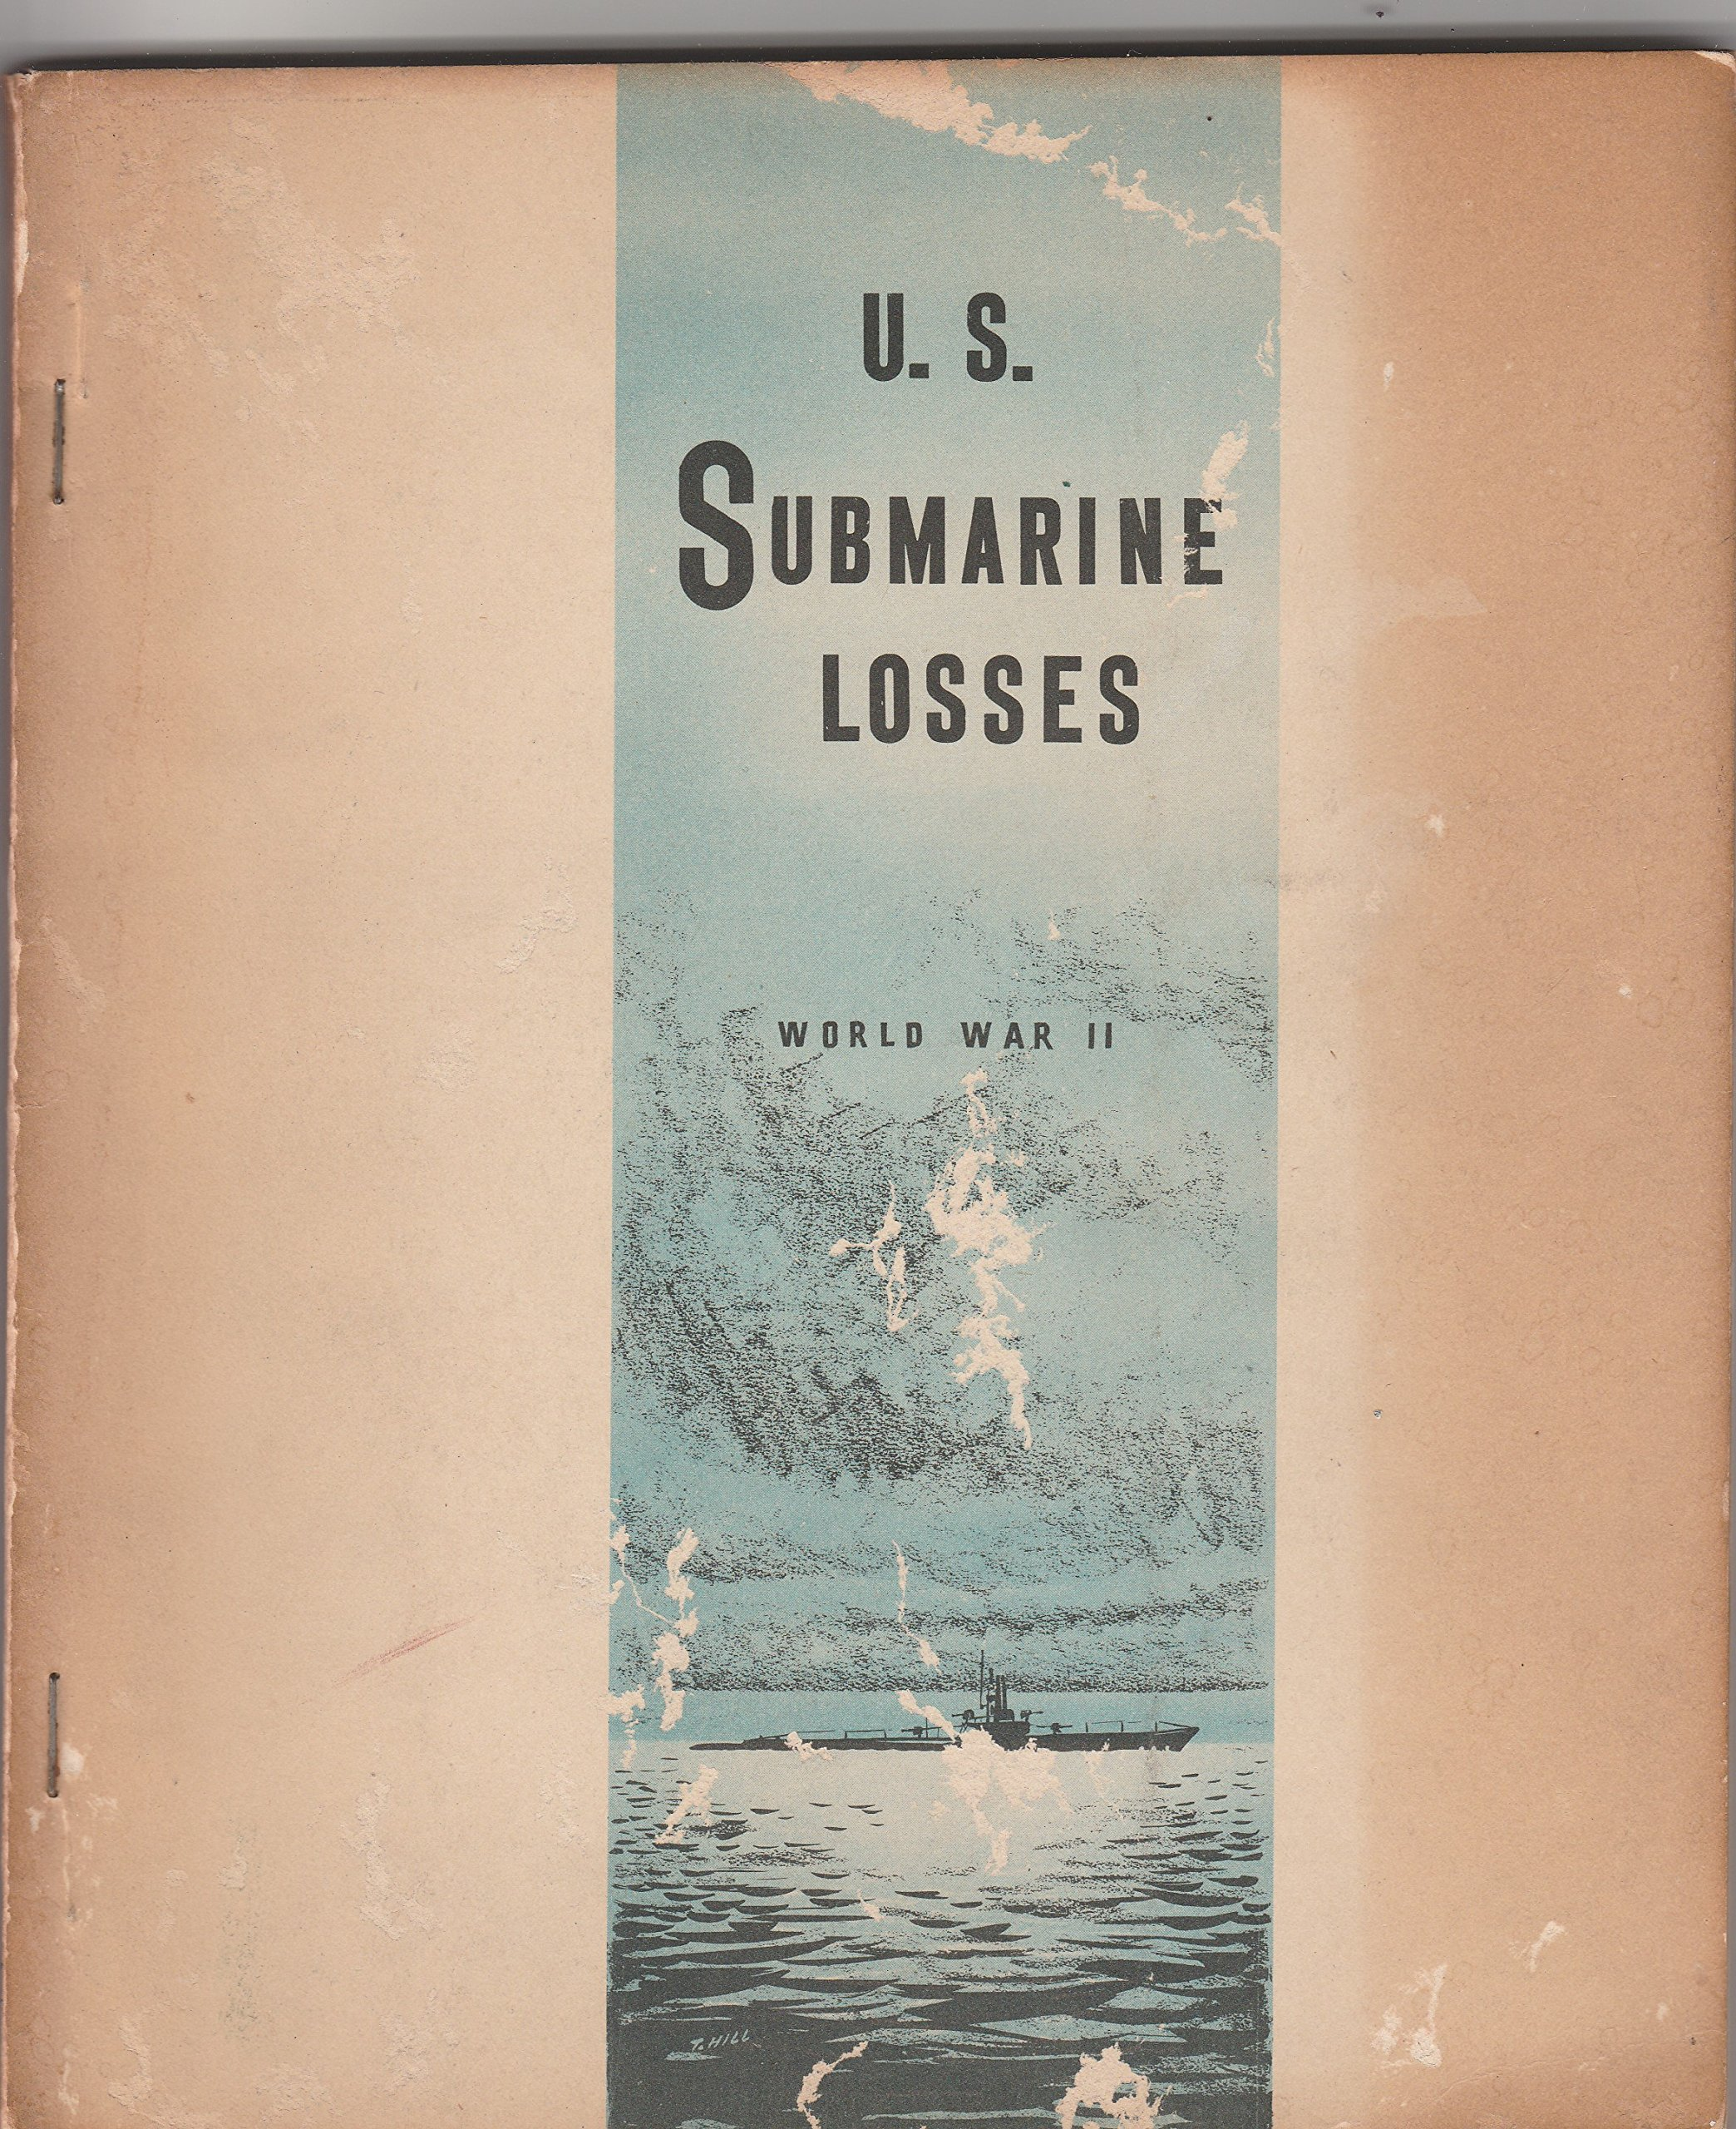 U.S. SUBMARINE LOSSES: WORLD WAR II